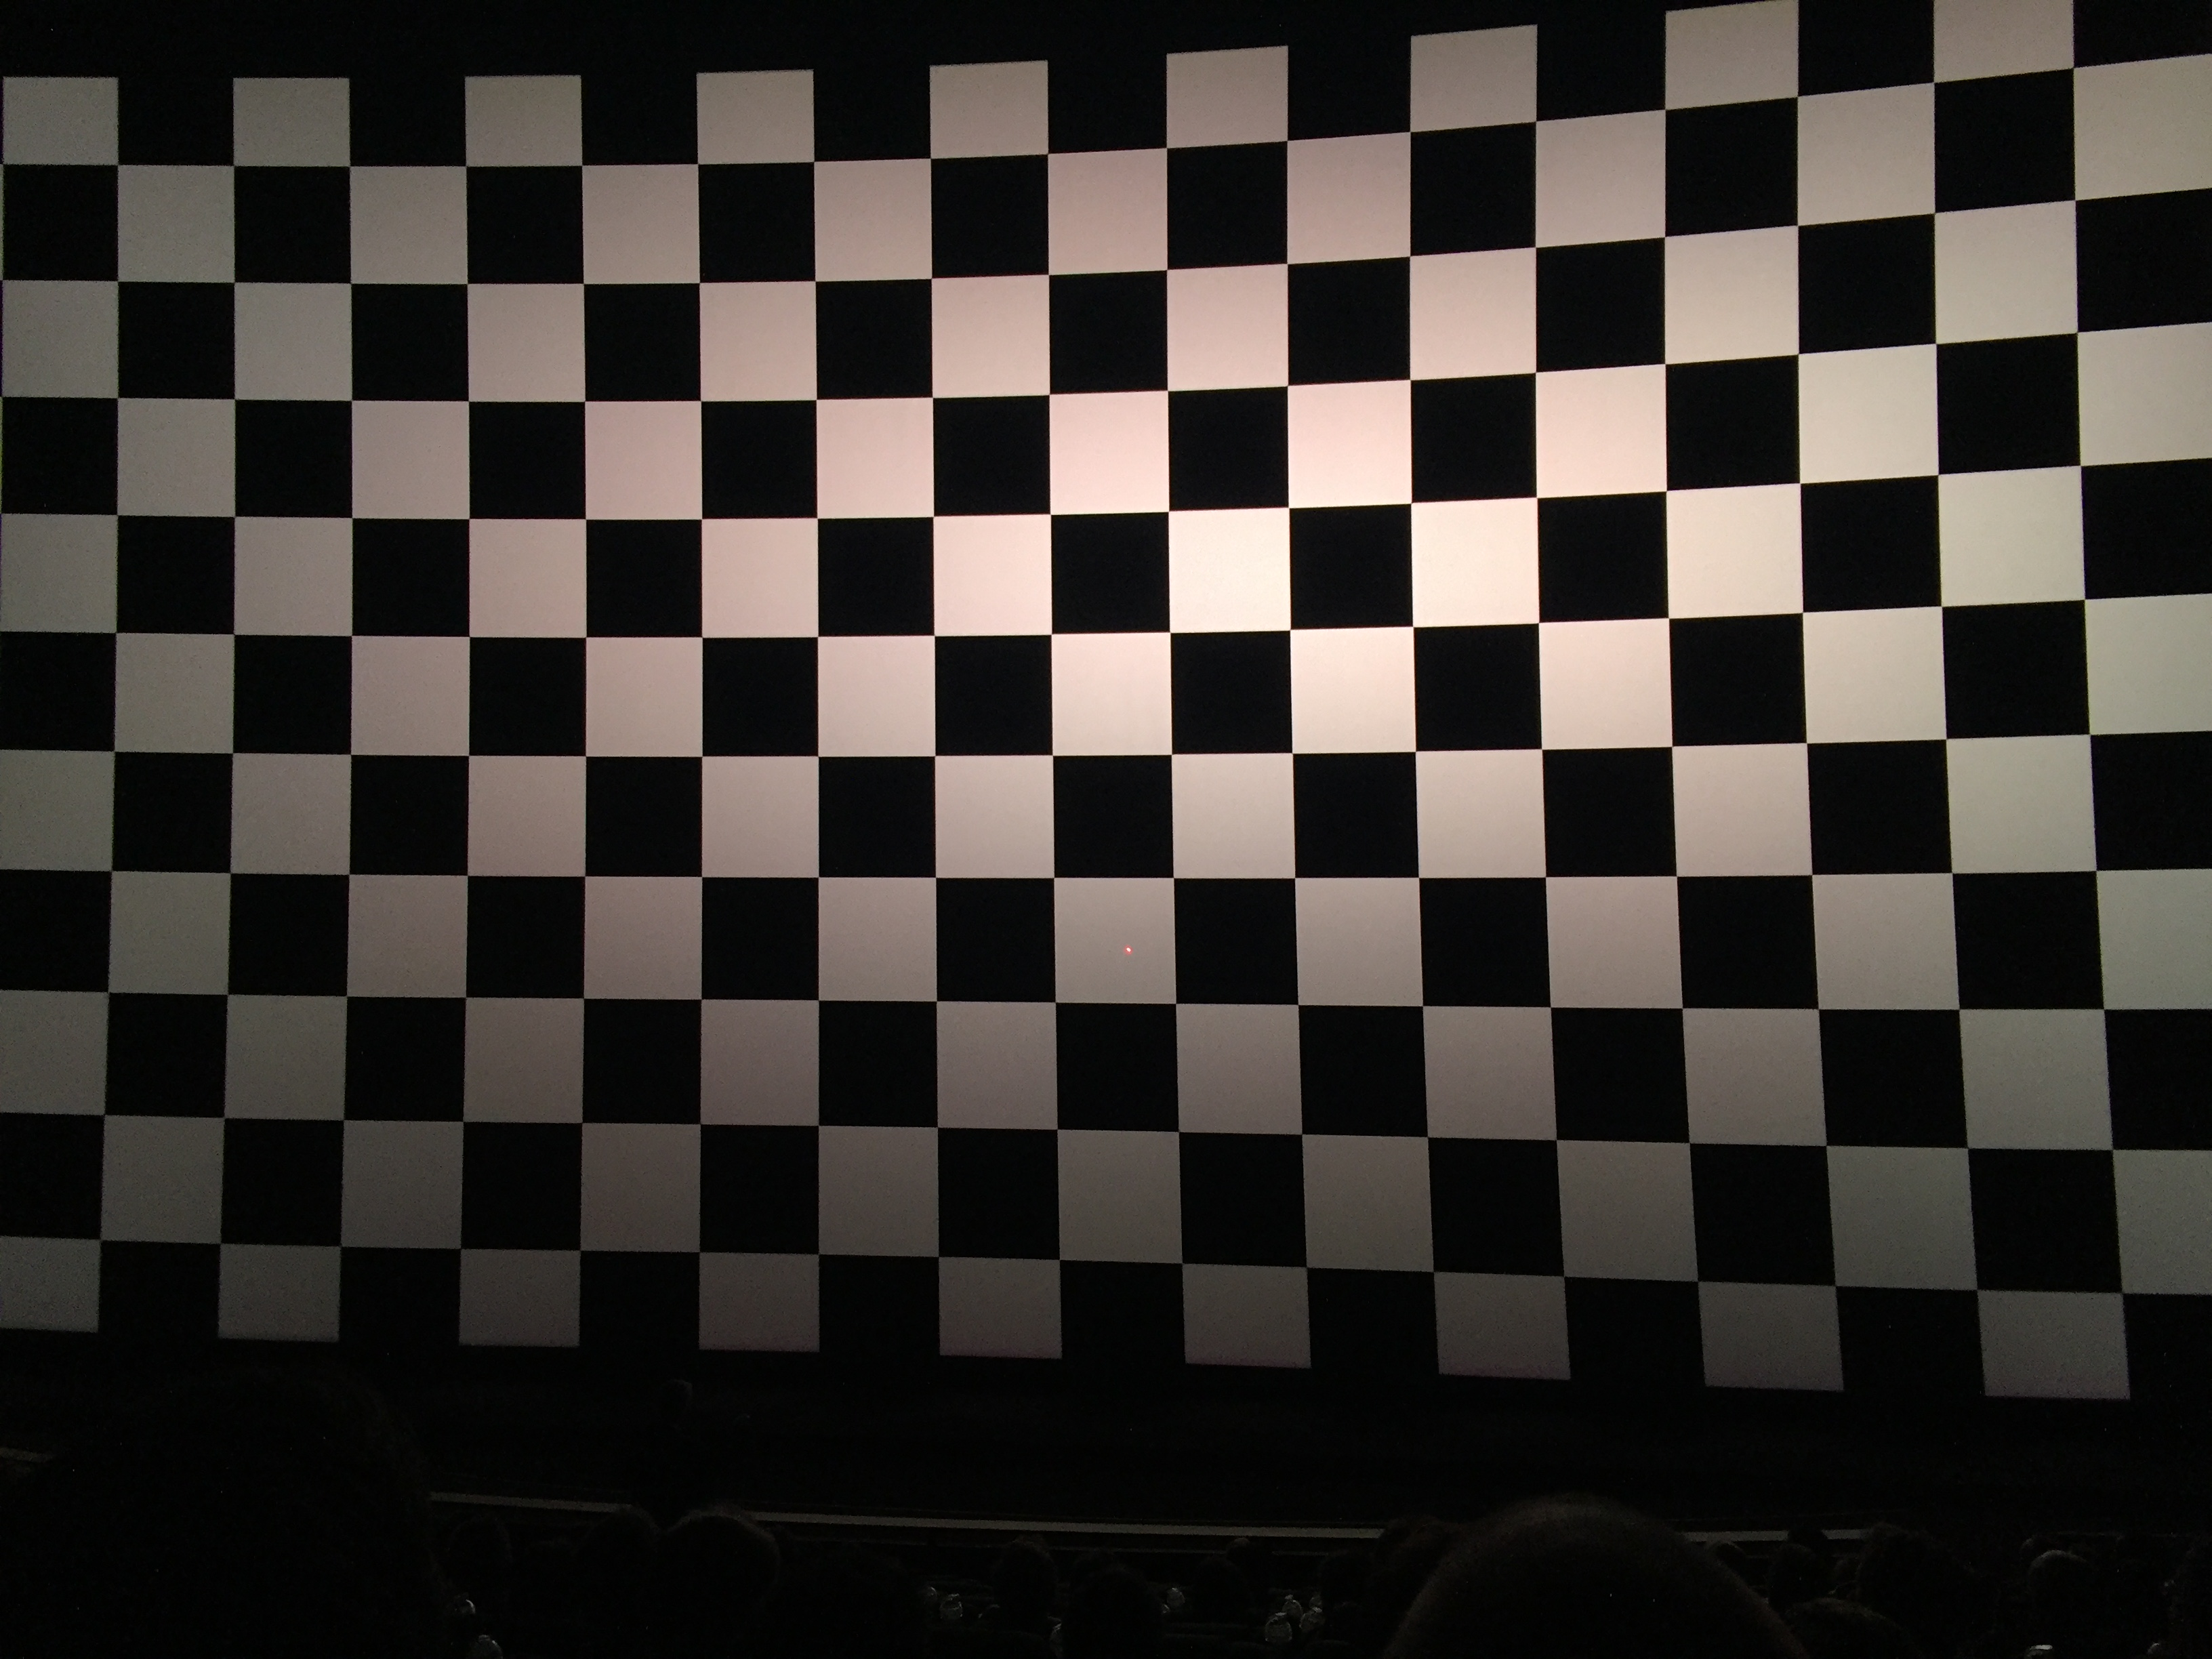 A chequerboard pattern showing the sharpness of the IMAX with laser system. Highlights and blacks are historically very difficult to accurately project using conventional DLP systems.